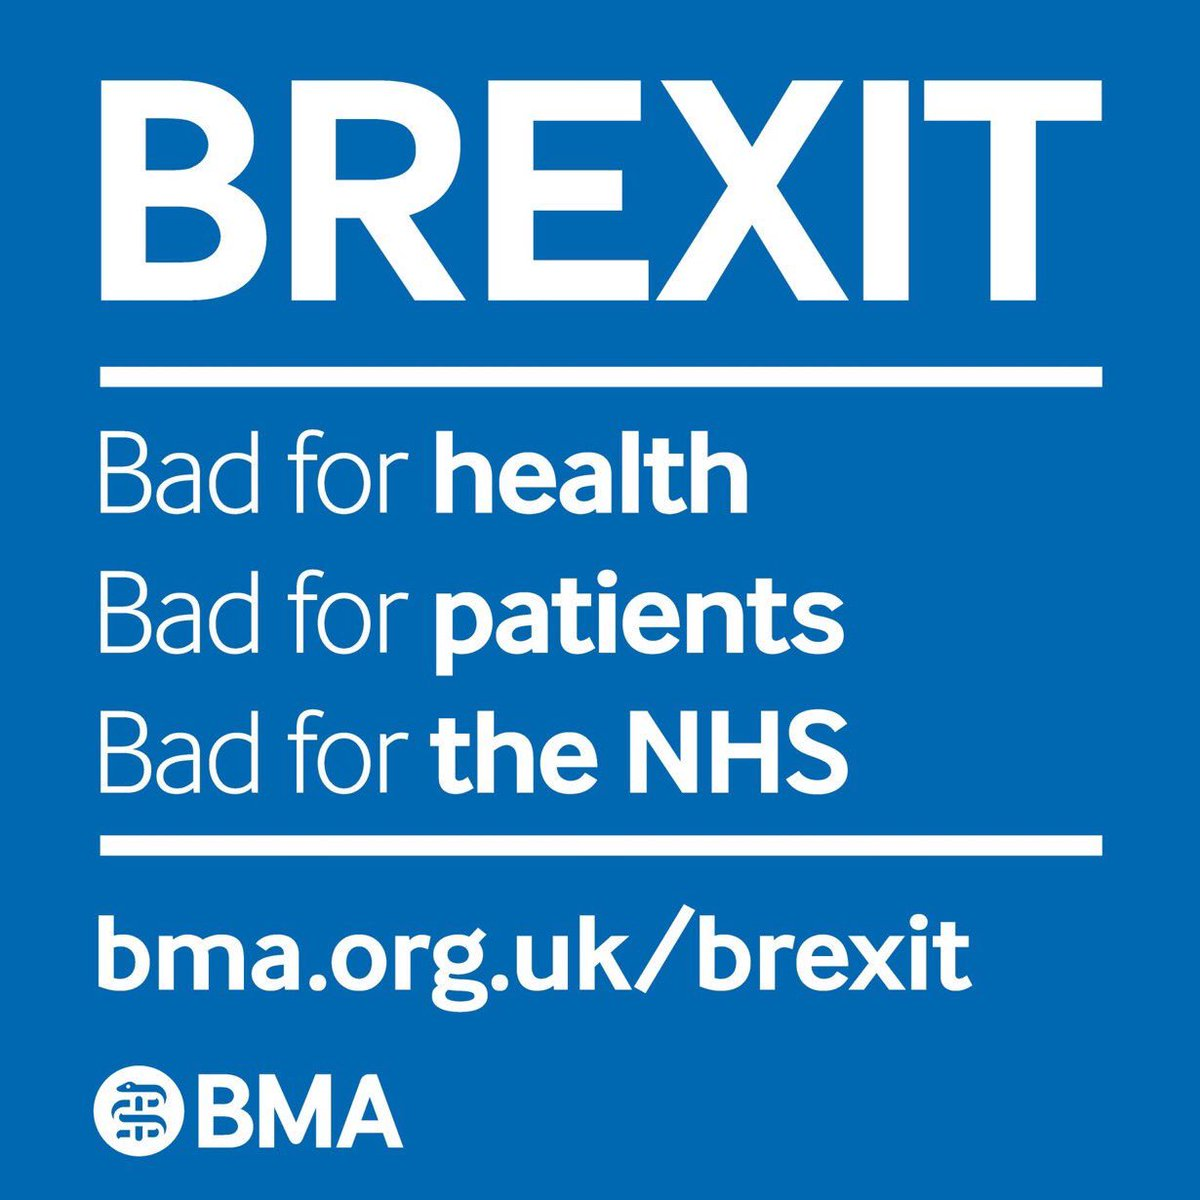 People ask why I'm so determined to #StopBrexit? Democracy was hacked: millions were conned by #LiarJohnson's infamous £350m/week #NHS funding pledge they admitted making up to win. The @RemainerNow voice is ignored Here are medics on brutal reality for an already stretched NHS twitter.com/thebma/status/…